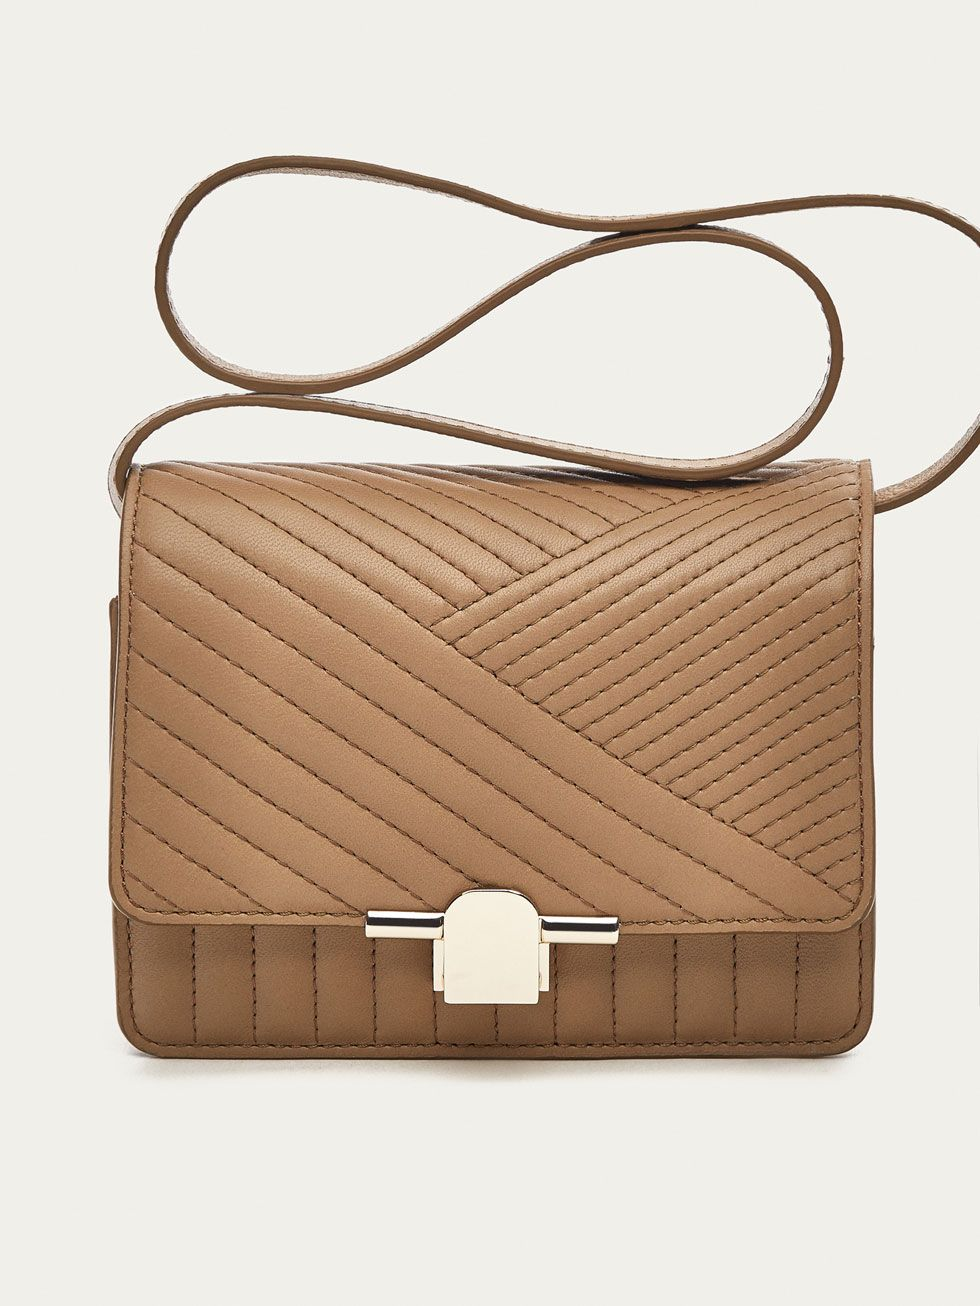 71438eea3 Spring Summer 2017 Women´s QUILTED LEATHER CROSSBODY BAG at Massimo Dutti  for 79.95. Effortless elegance!